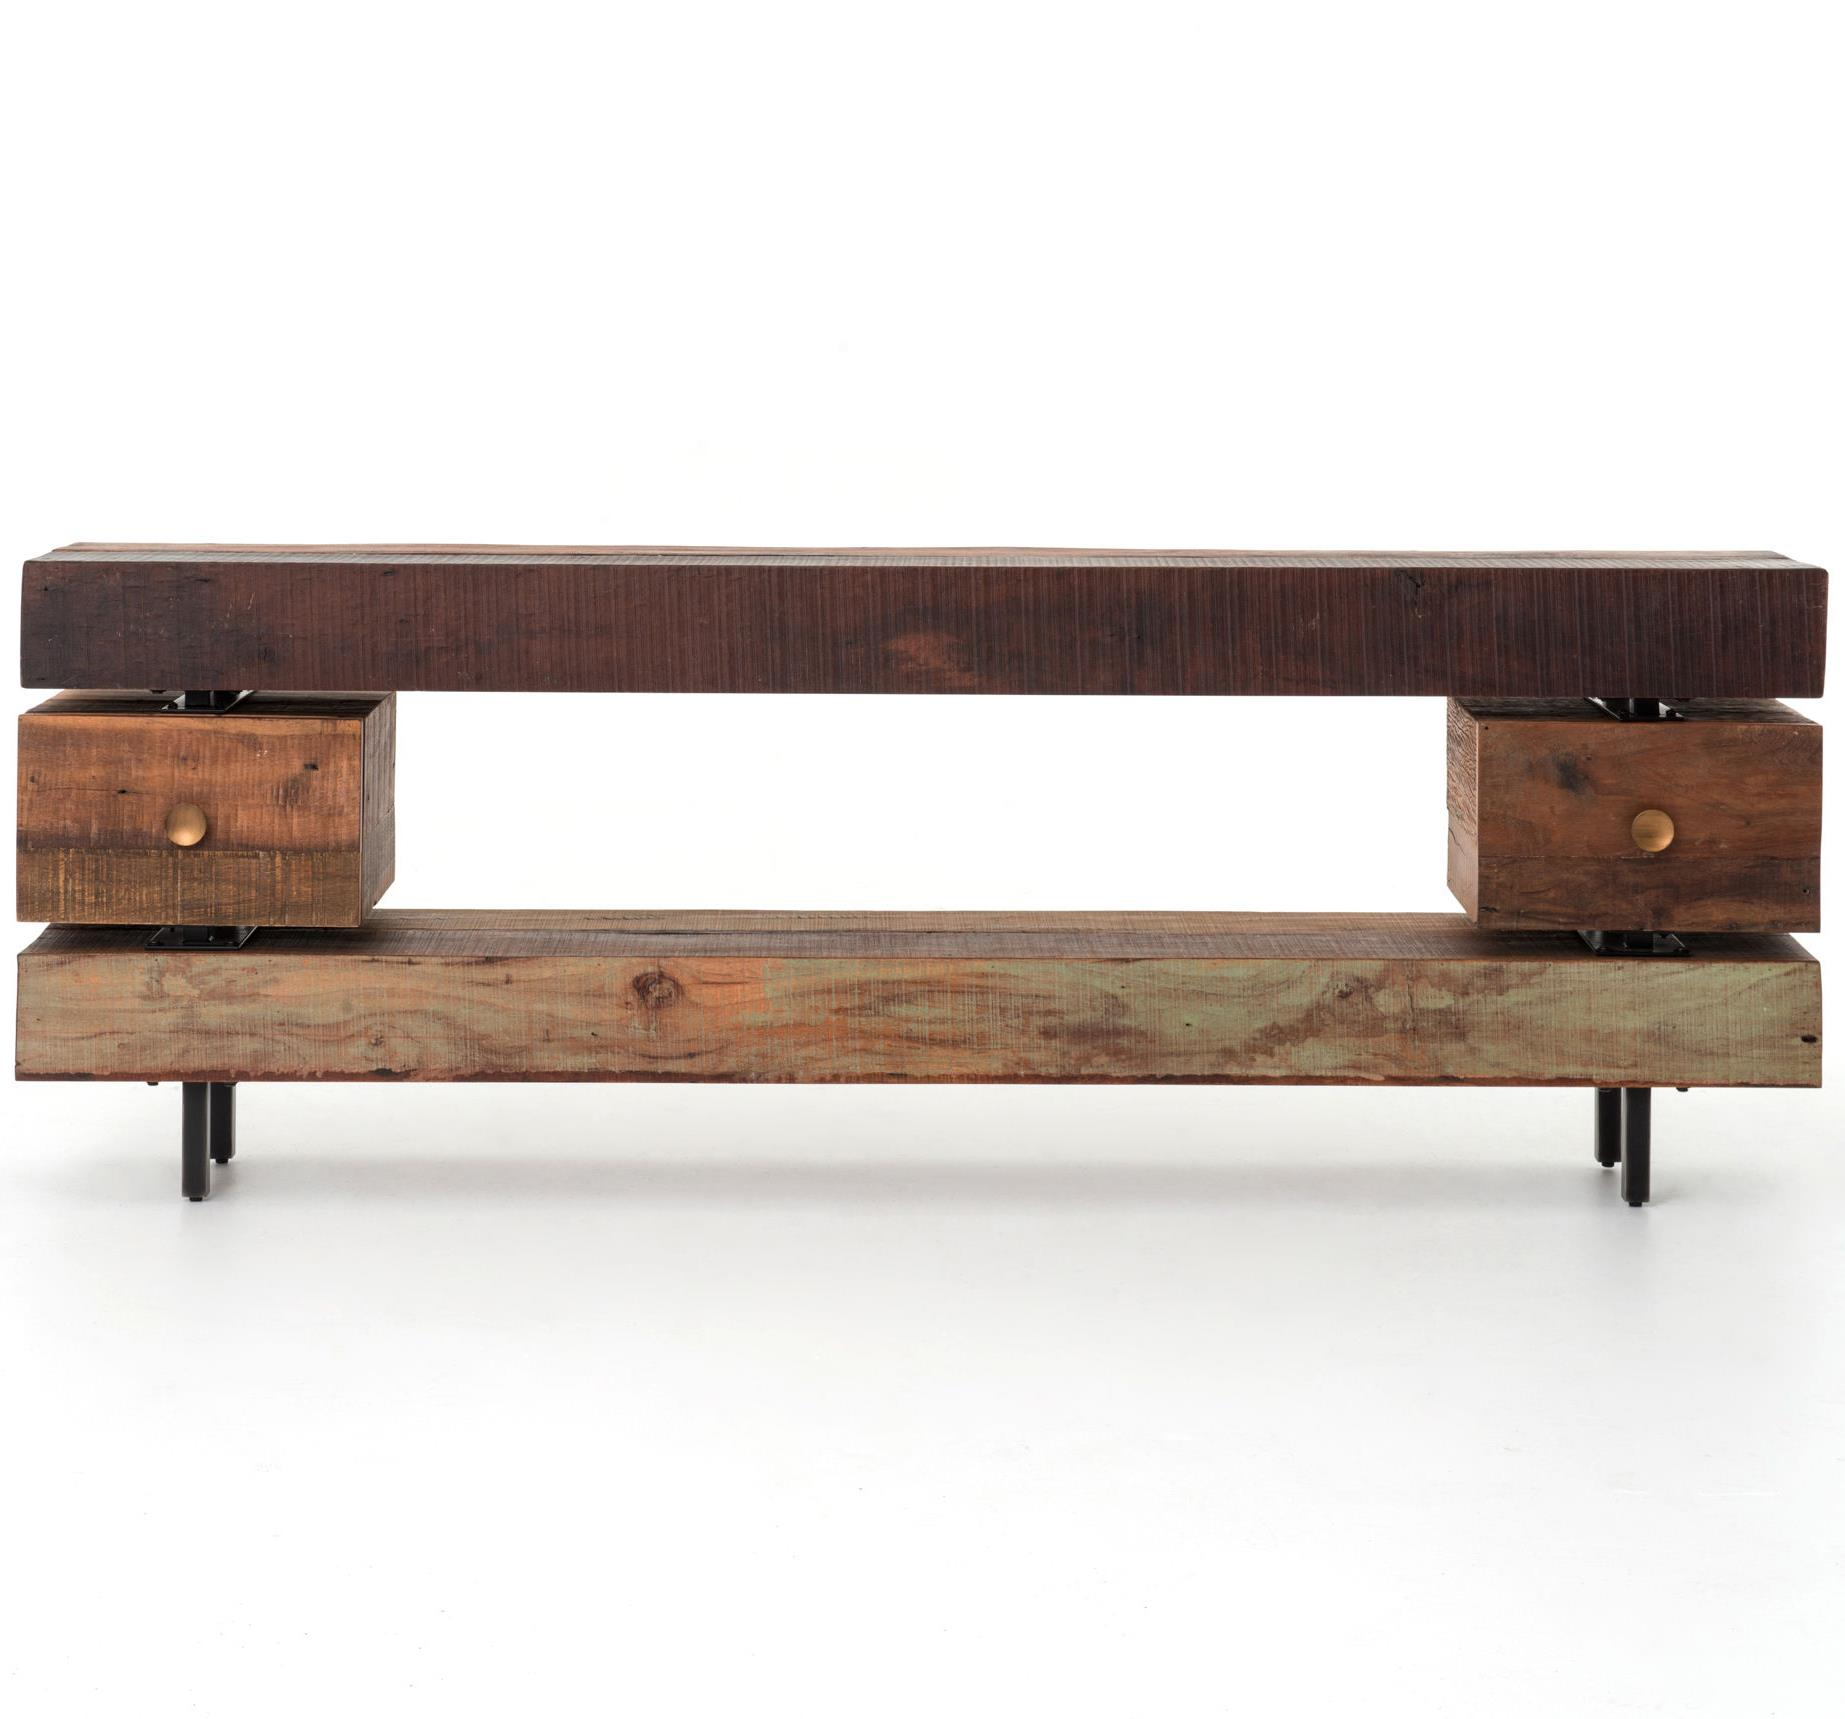 Four Hands Bina Dillon Console Table - Item Number: VBNA-CO115